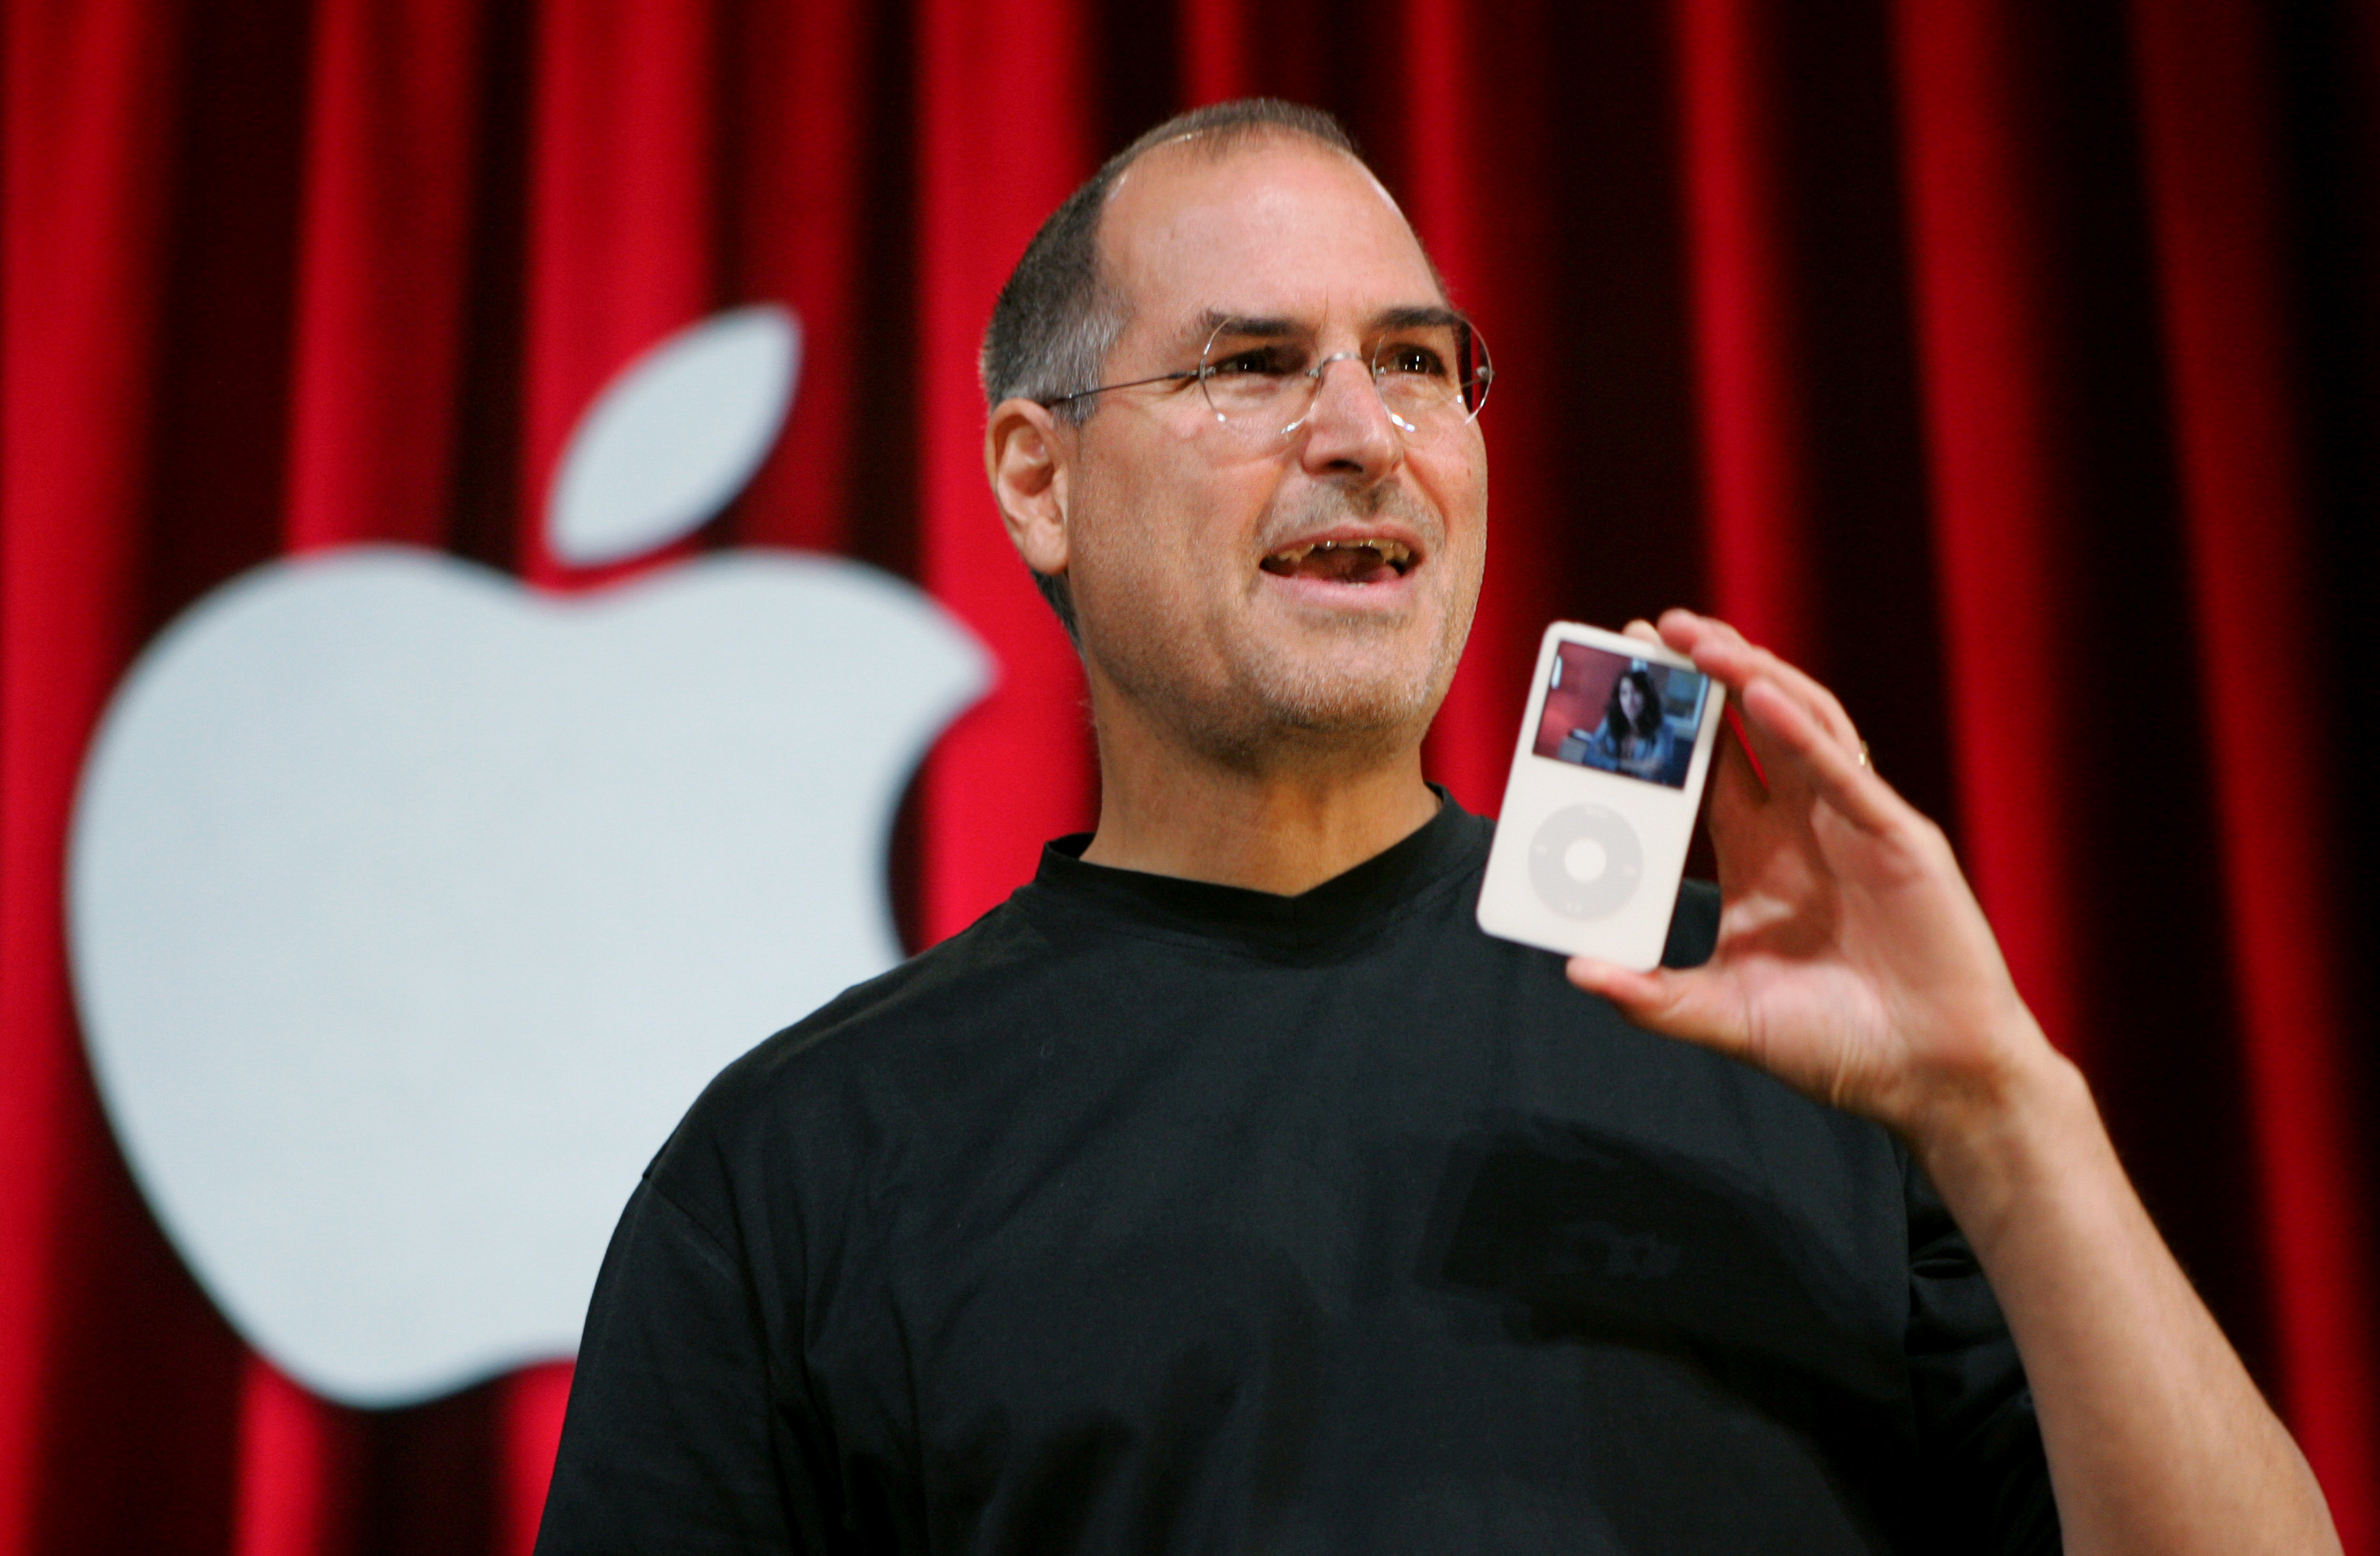 The late Apple CEO Steve Jobs holds up an iPod during an event in San Jose, Calif. on Oct. 12, 2005.